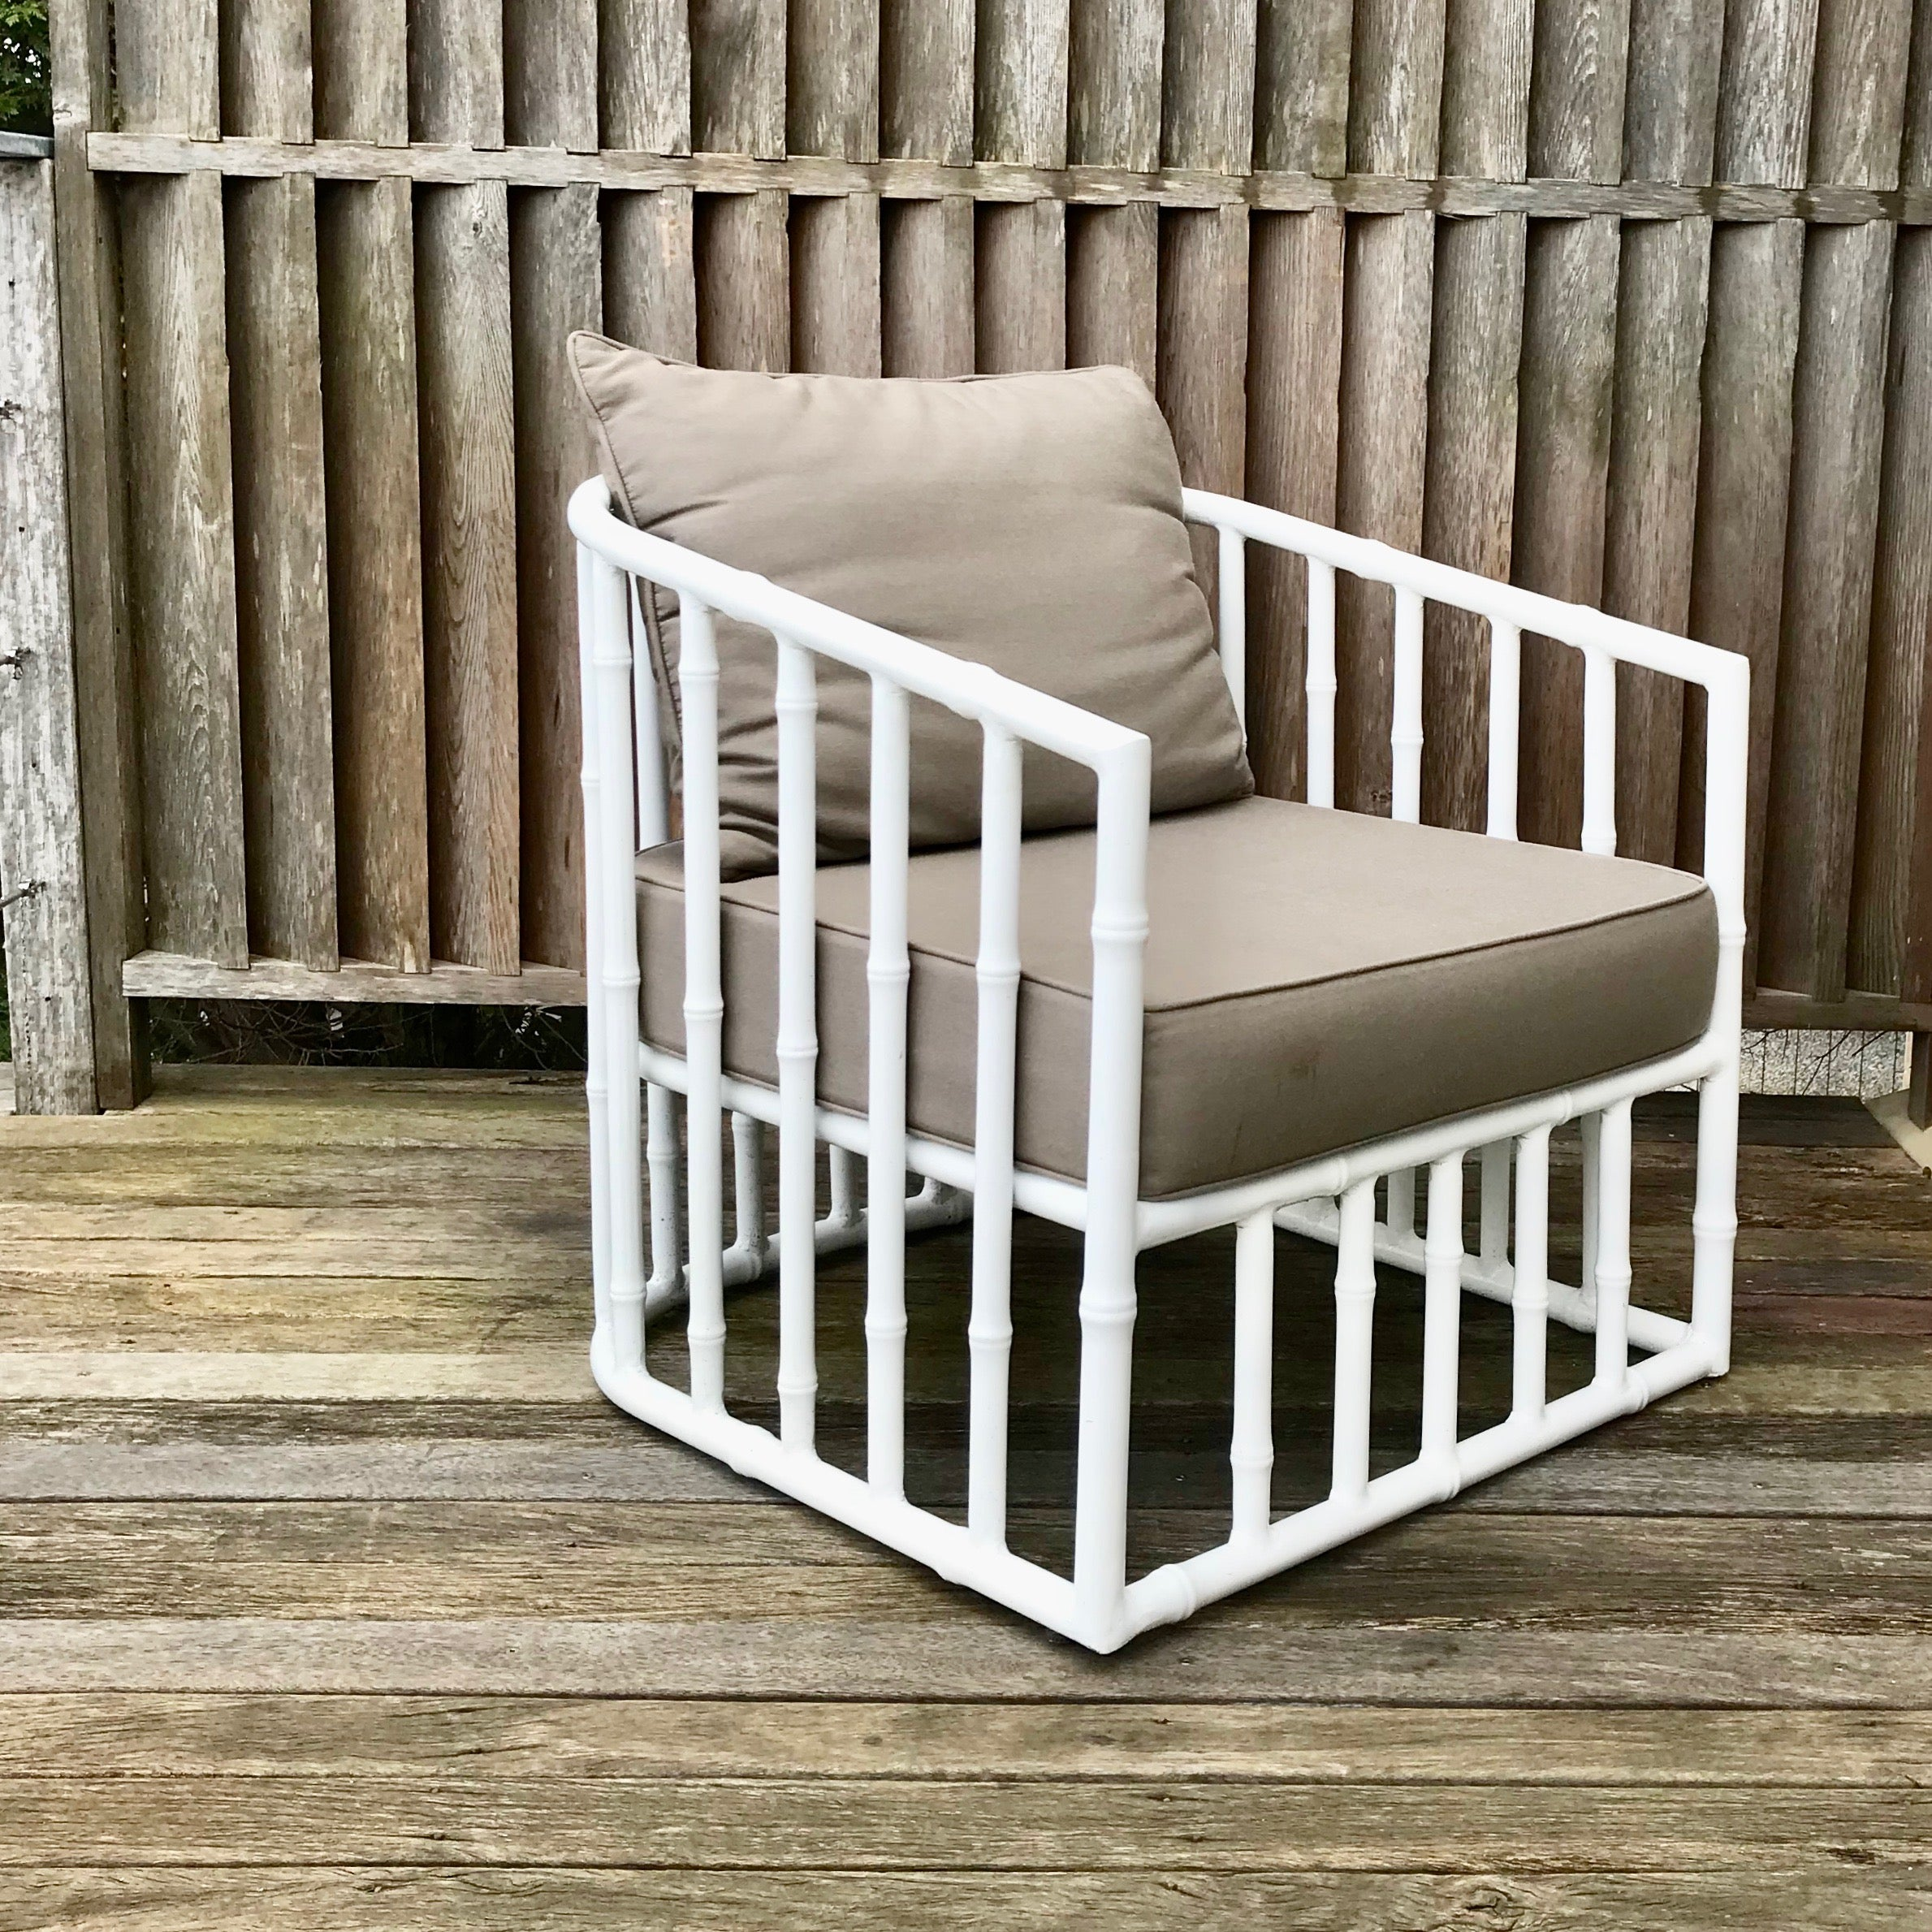 Bella Faux Bamboo Armchair by Robert Plumb (2 available)